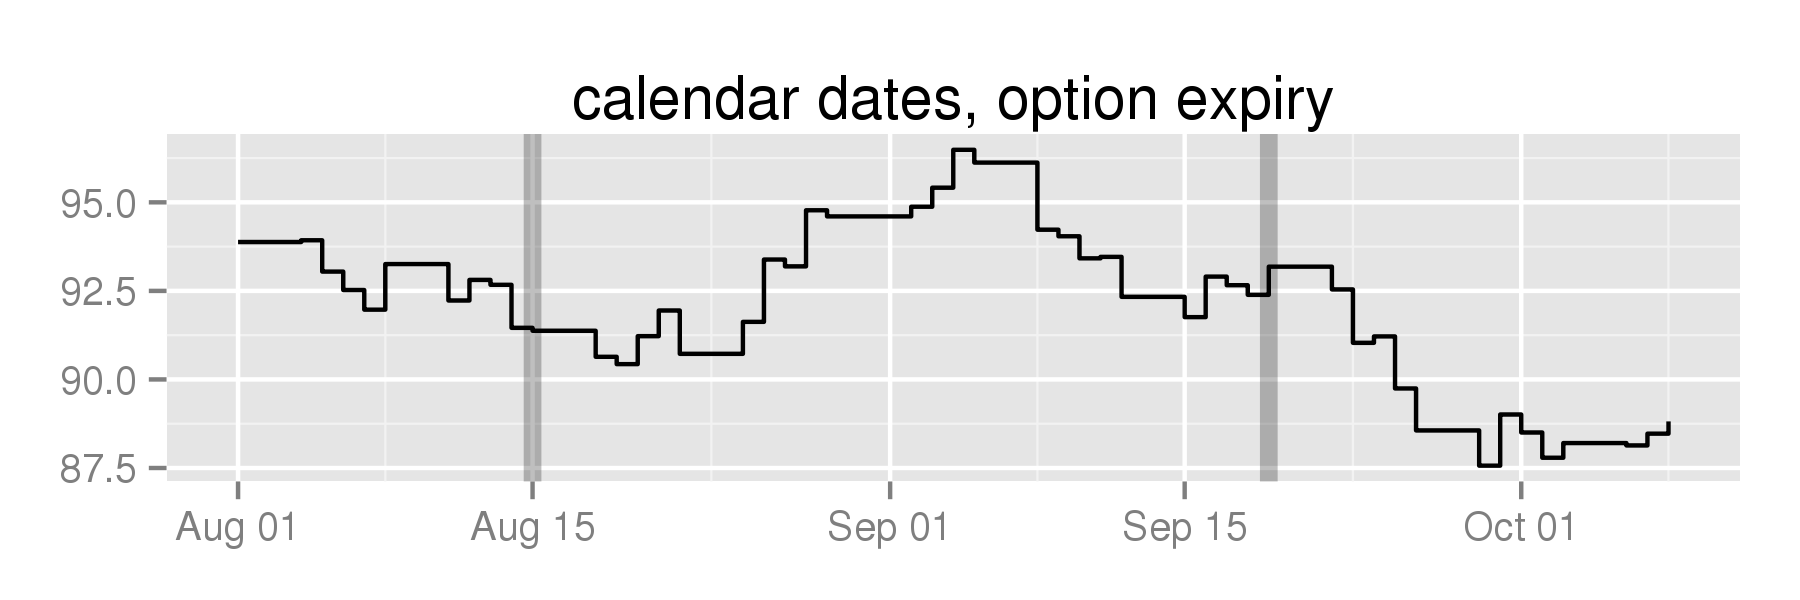 calendar dates with options